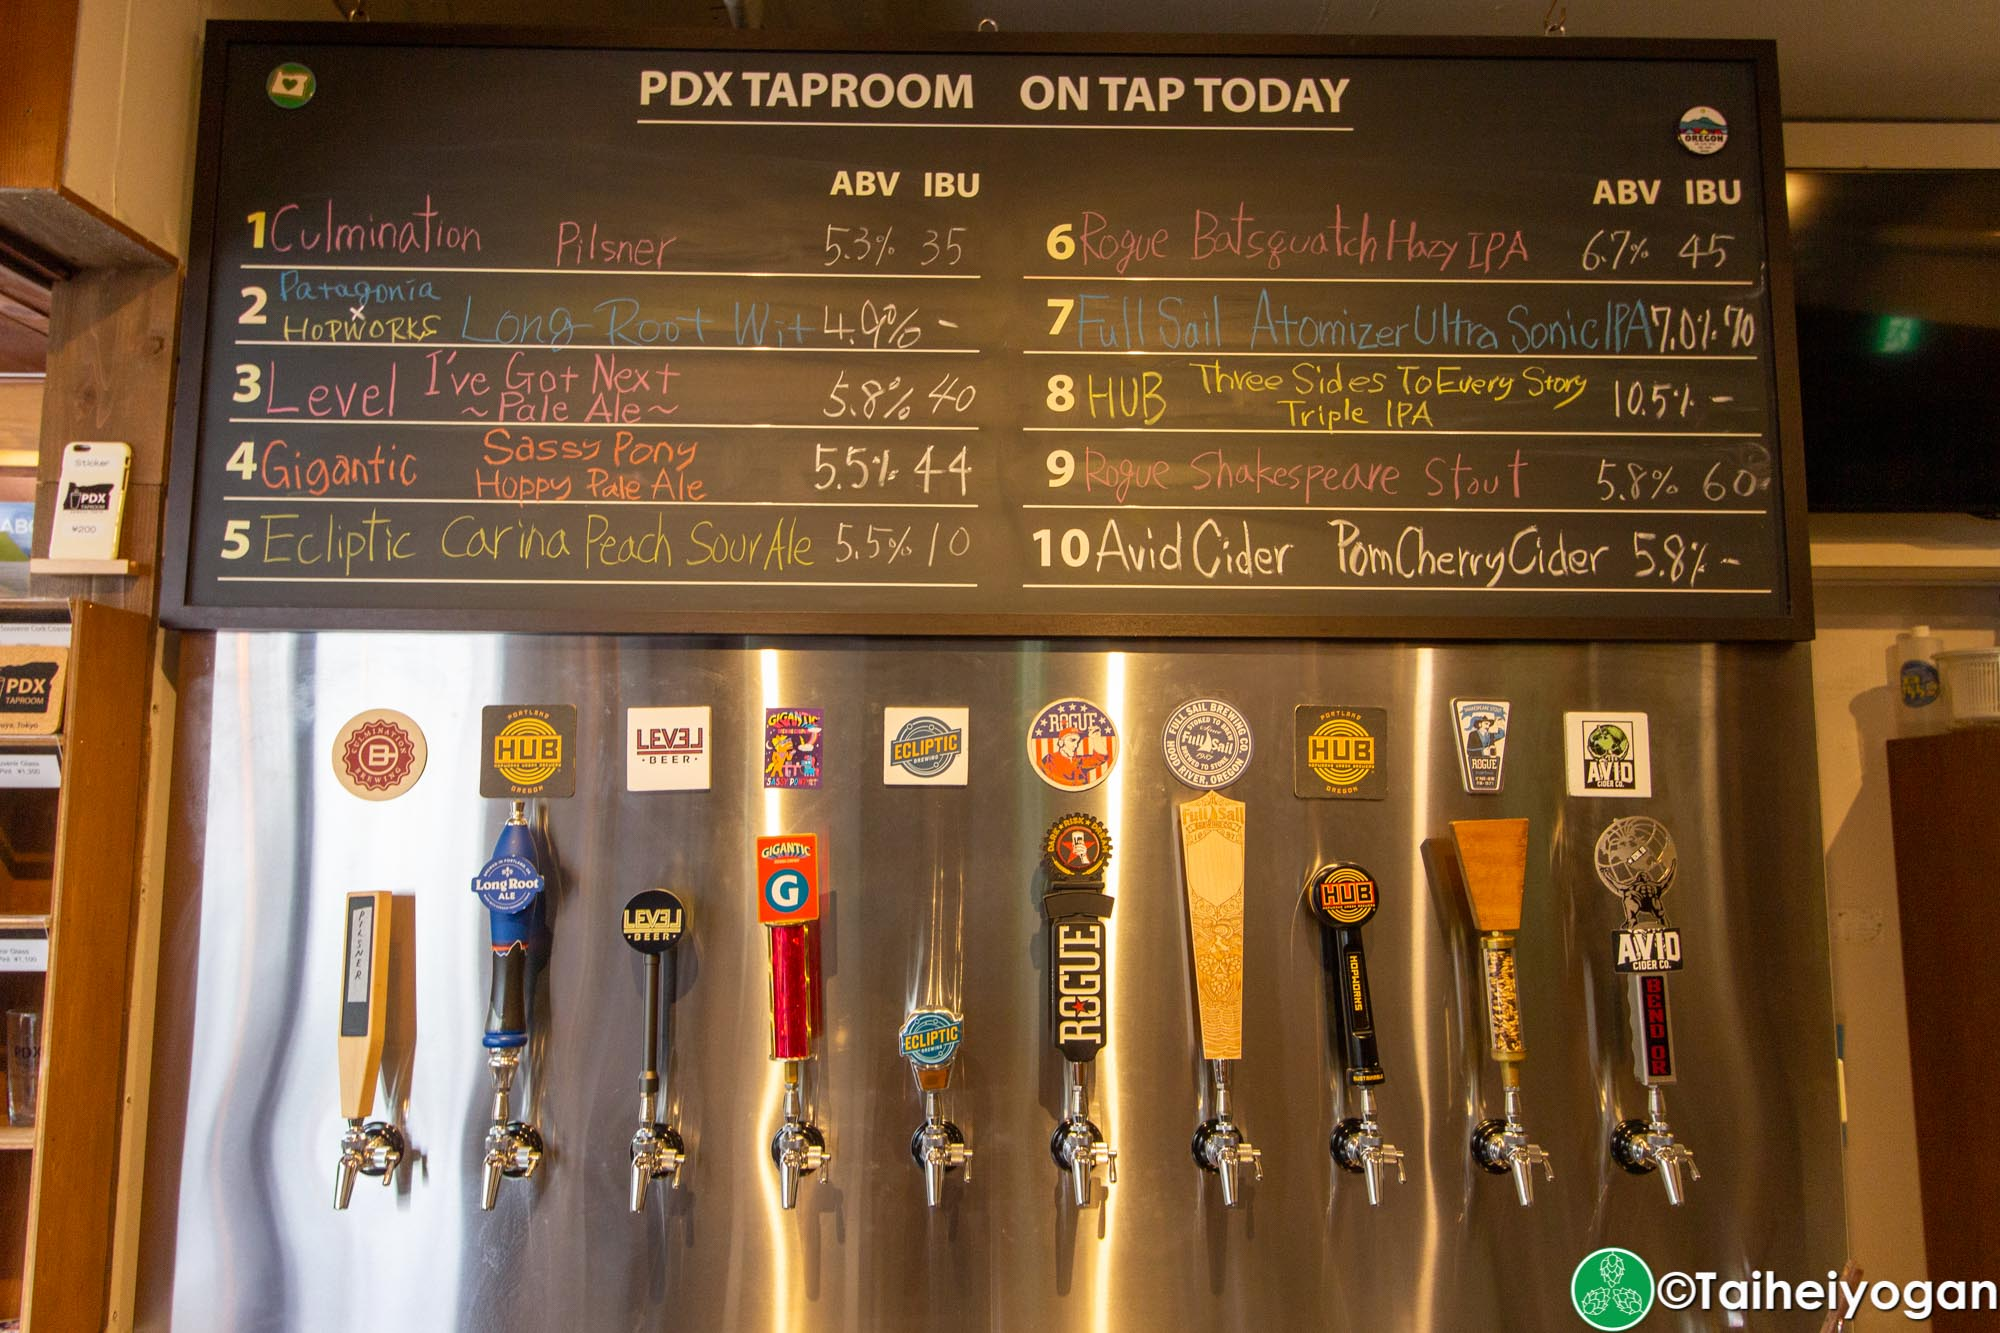 PDX Taproom - Interior - Beer Taps